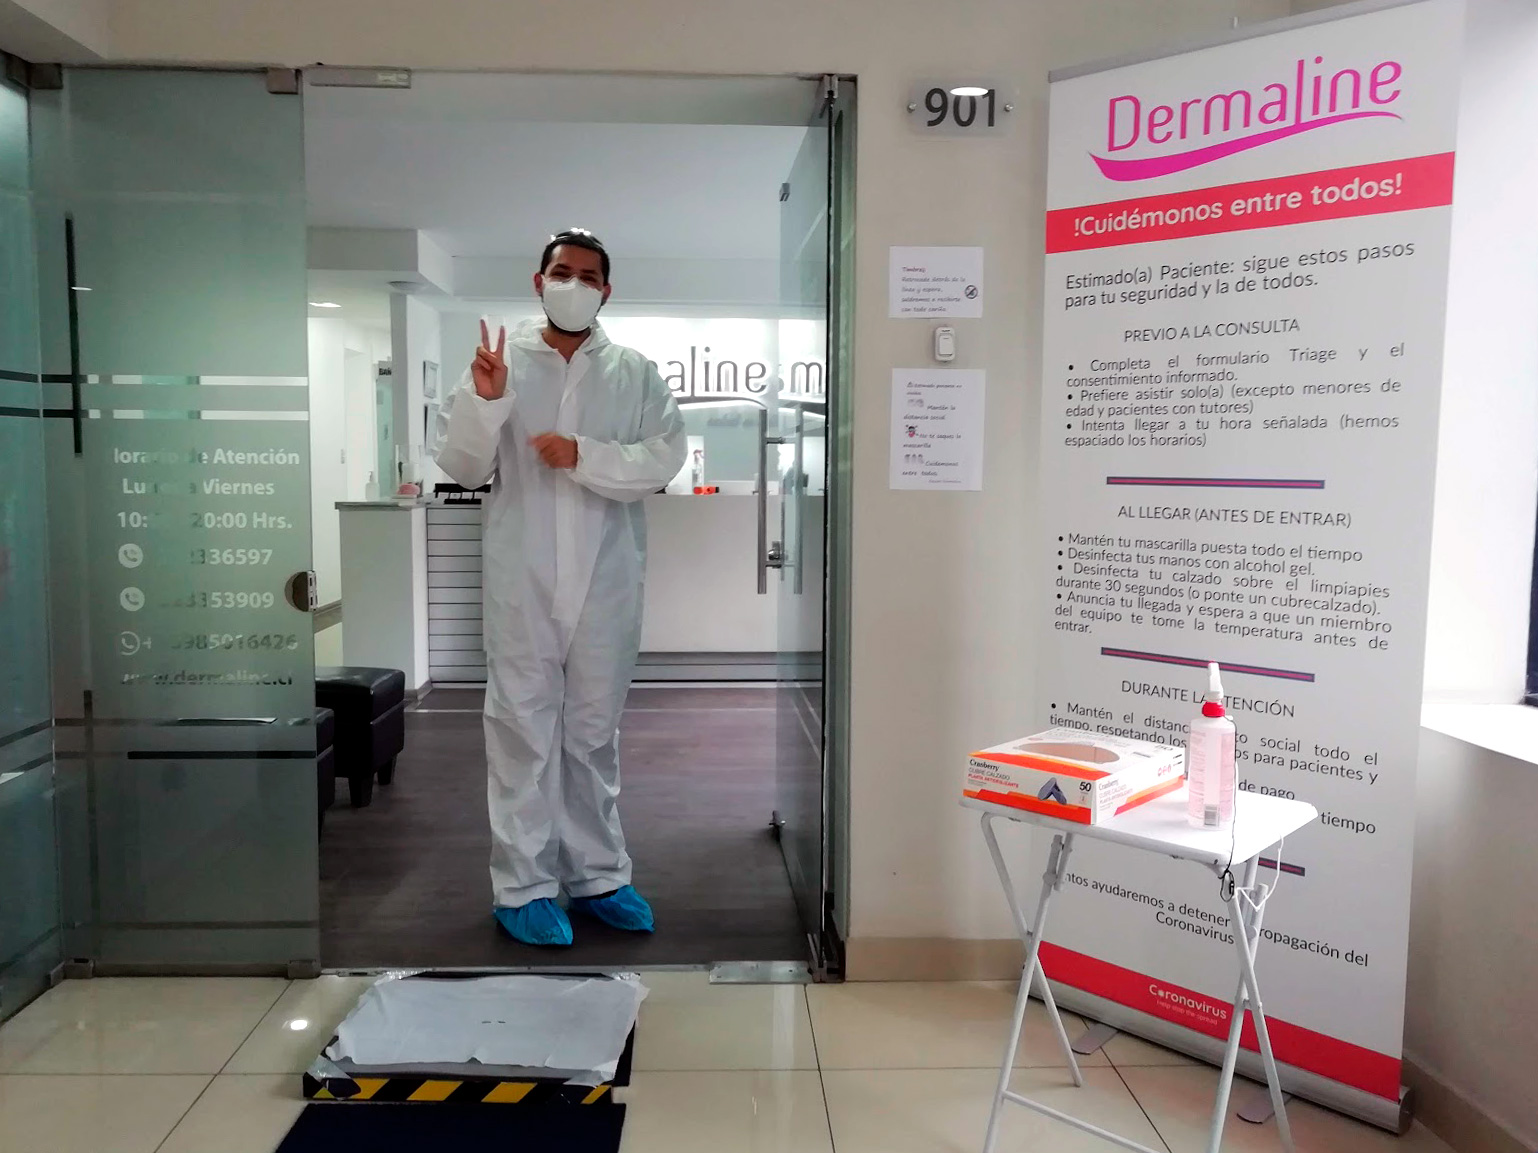 A dentist in his personal protective equipment greets at the entrance to a clinic during the quarantine